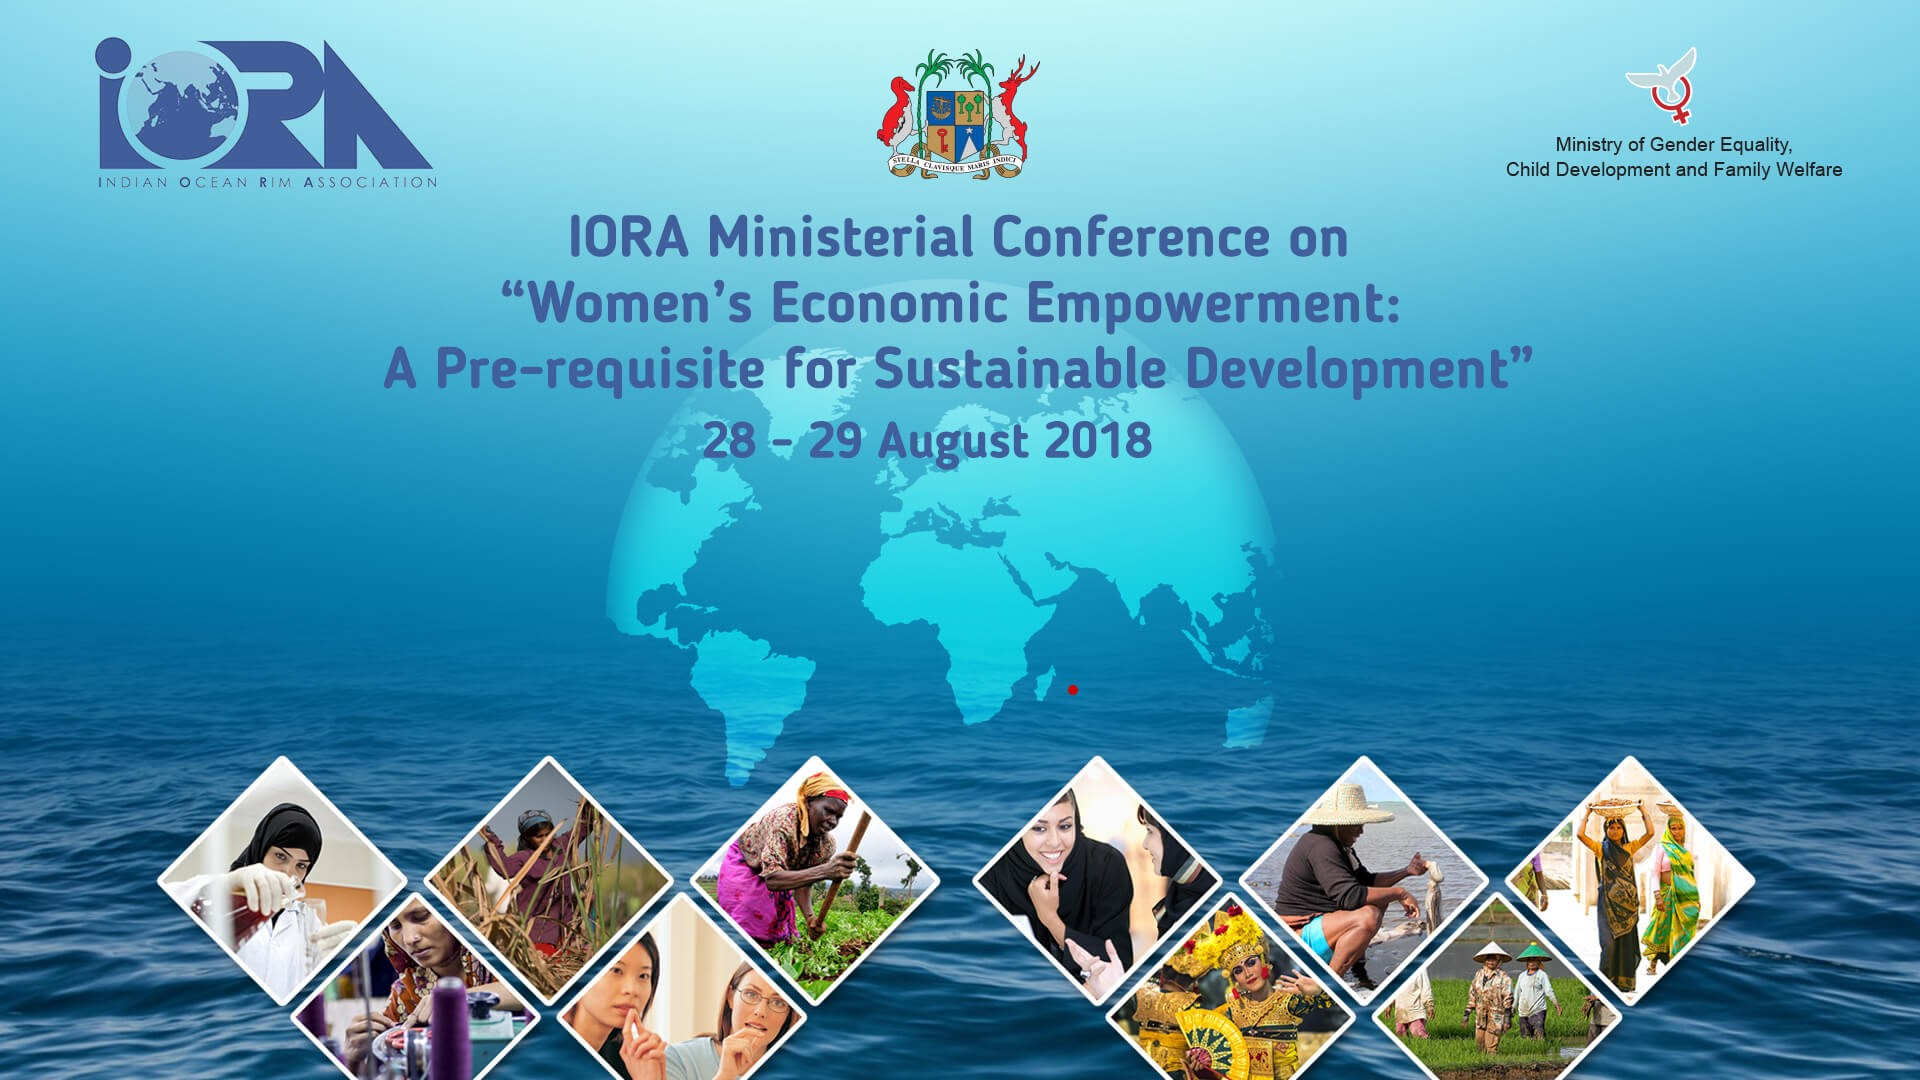 Ministerial Conference on Women's Economic Empowerment - A Pre-requisite for Sustainable Development